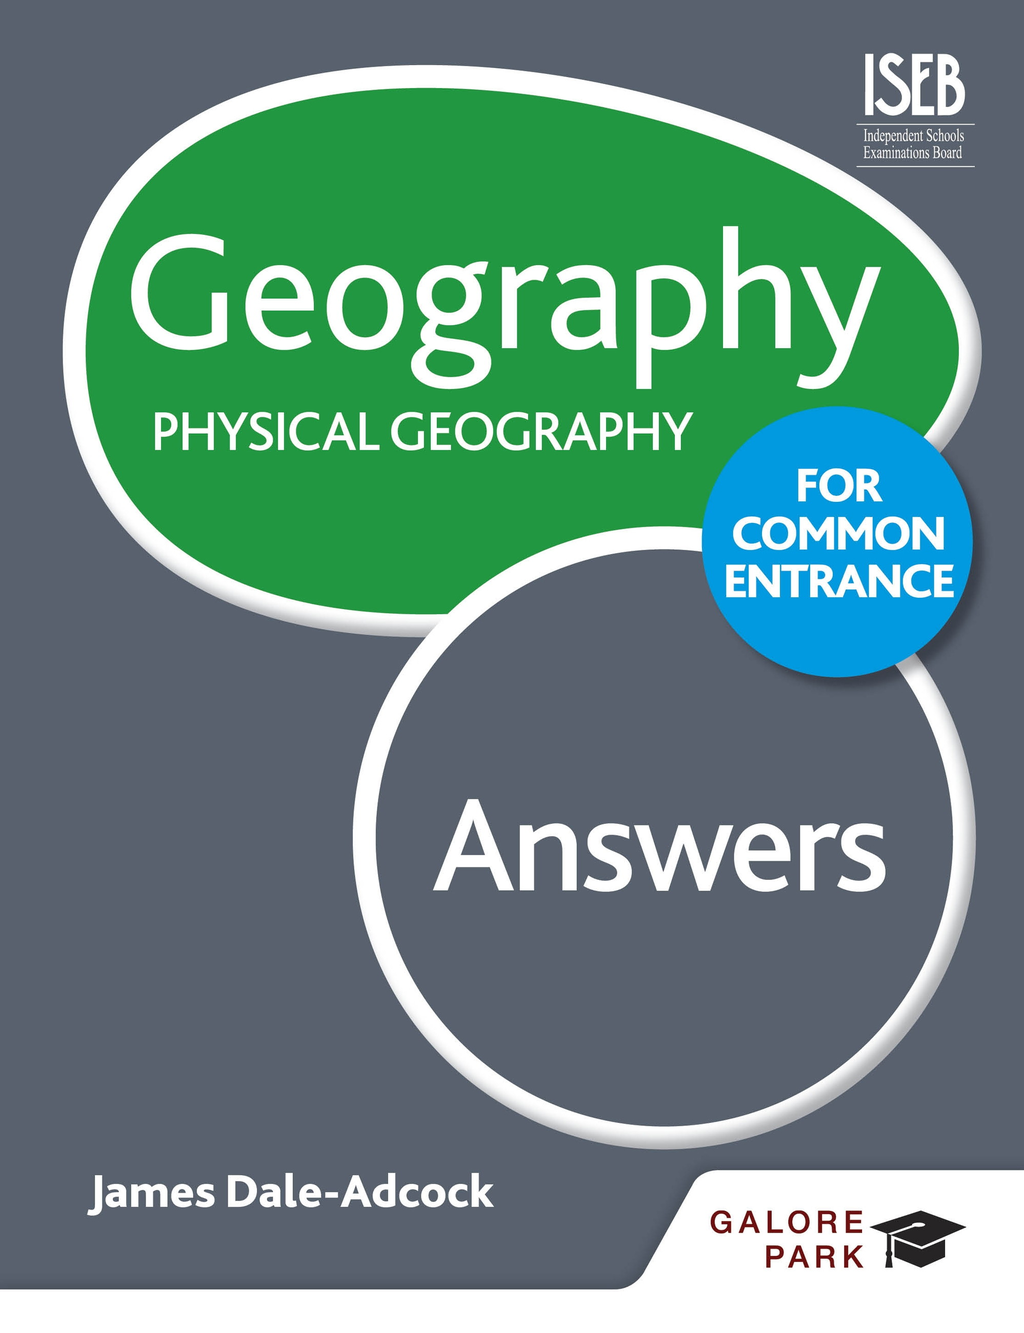 Geography for Common Entrance: Physical Geography Answers